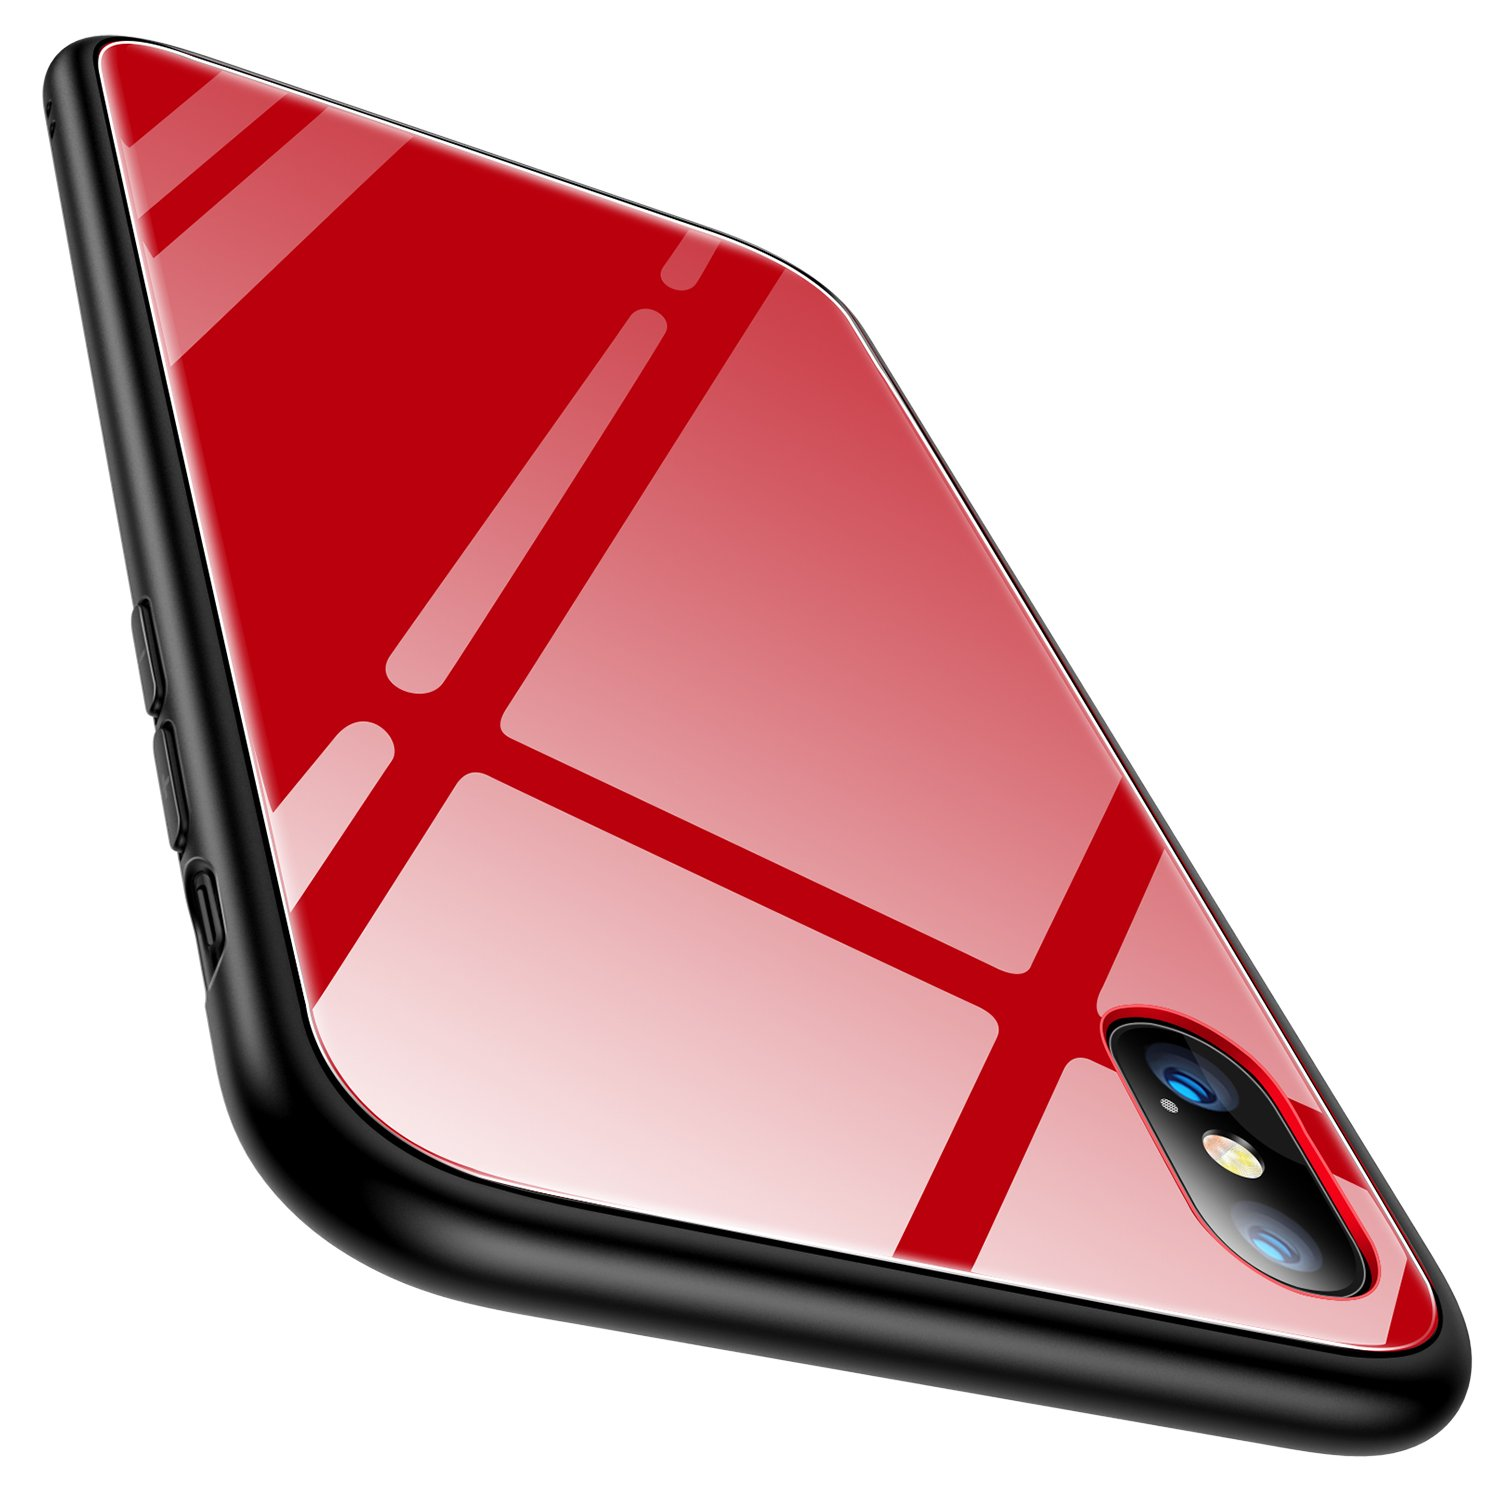 big sale bdf0b b3f1a iPhone X Case, TORRAS iPhone X Tempered Glass Hard Back Full Protective  Cover Case with Soft Bumper for Apple iPhone X, Red